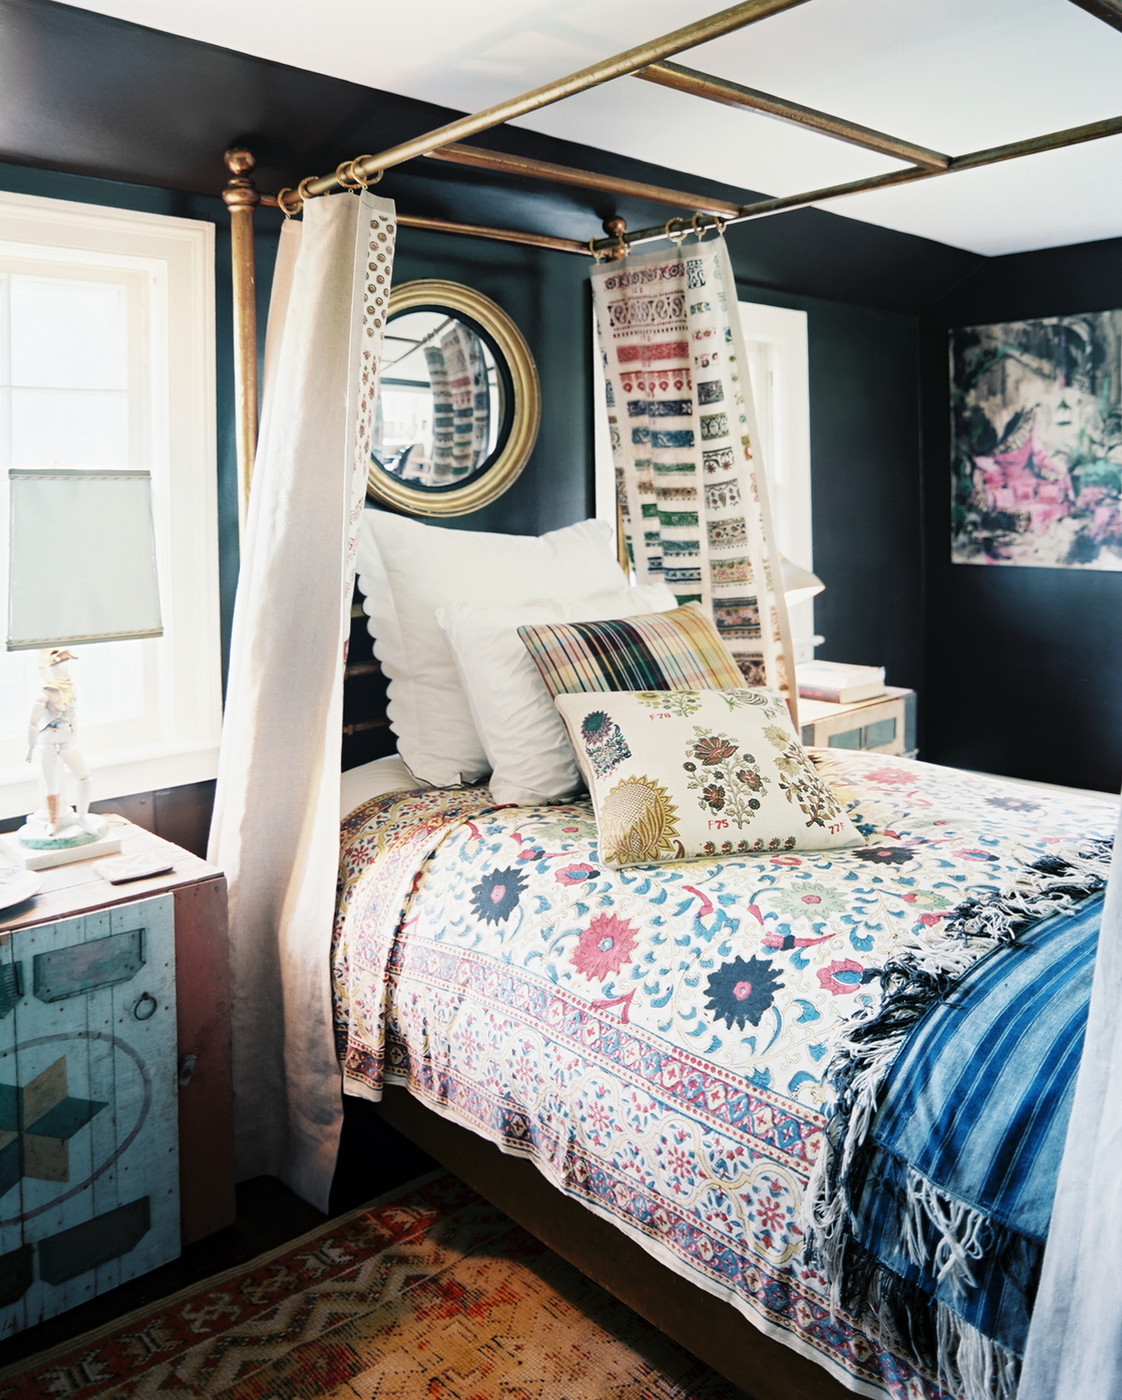 40 Bohemian Bedrooms To Fashion Your Eclectic Tastes After on Boho Bedroom Decor  id=89308